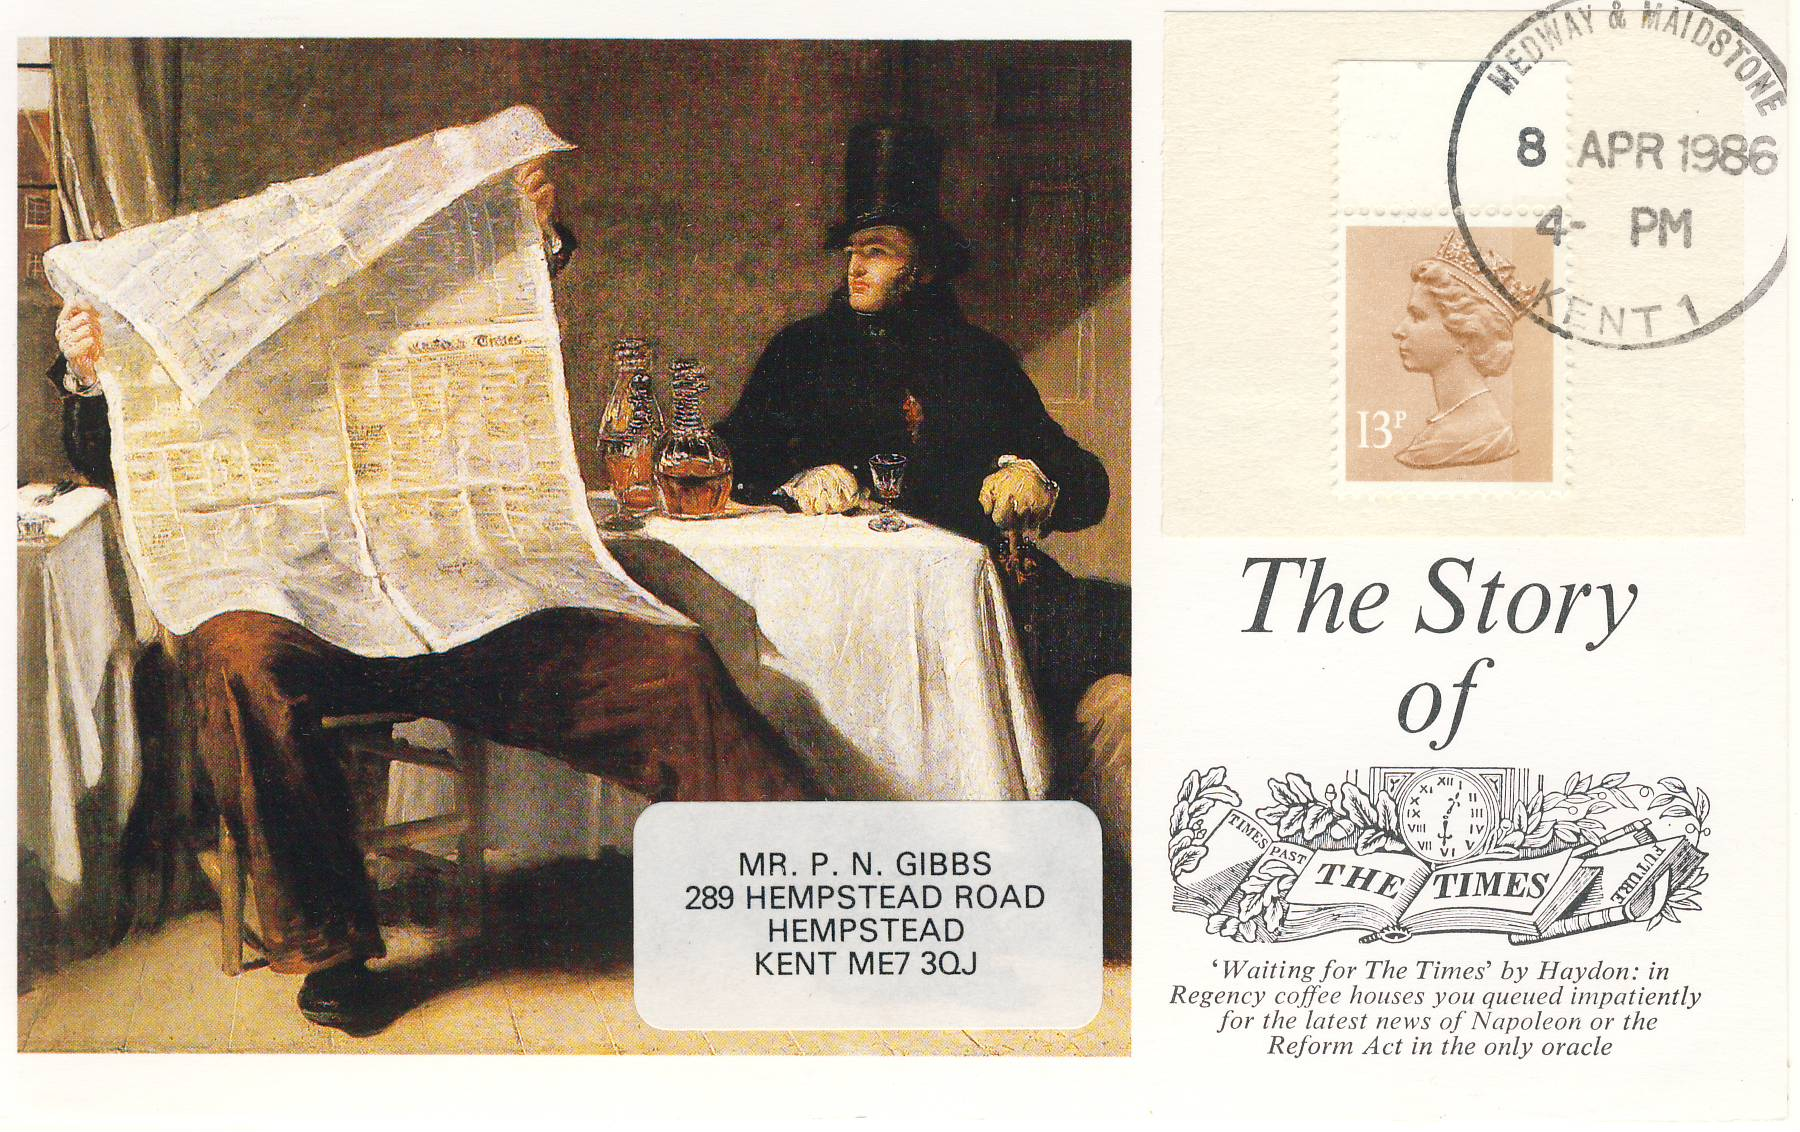 1986 Hail to the Chief Story of the Times Newspaper Postcard 13p stamp refF610 Very good condition. Medway and Maidstone Kent circular date stamp CDS 8th April 1986